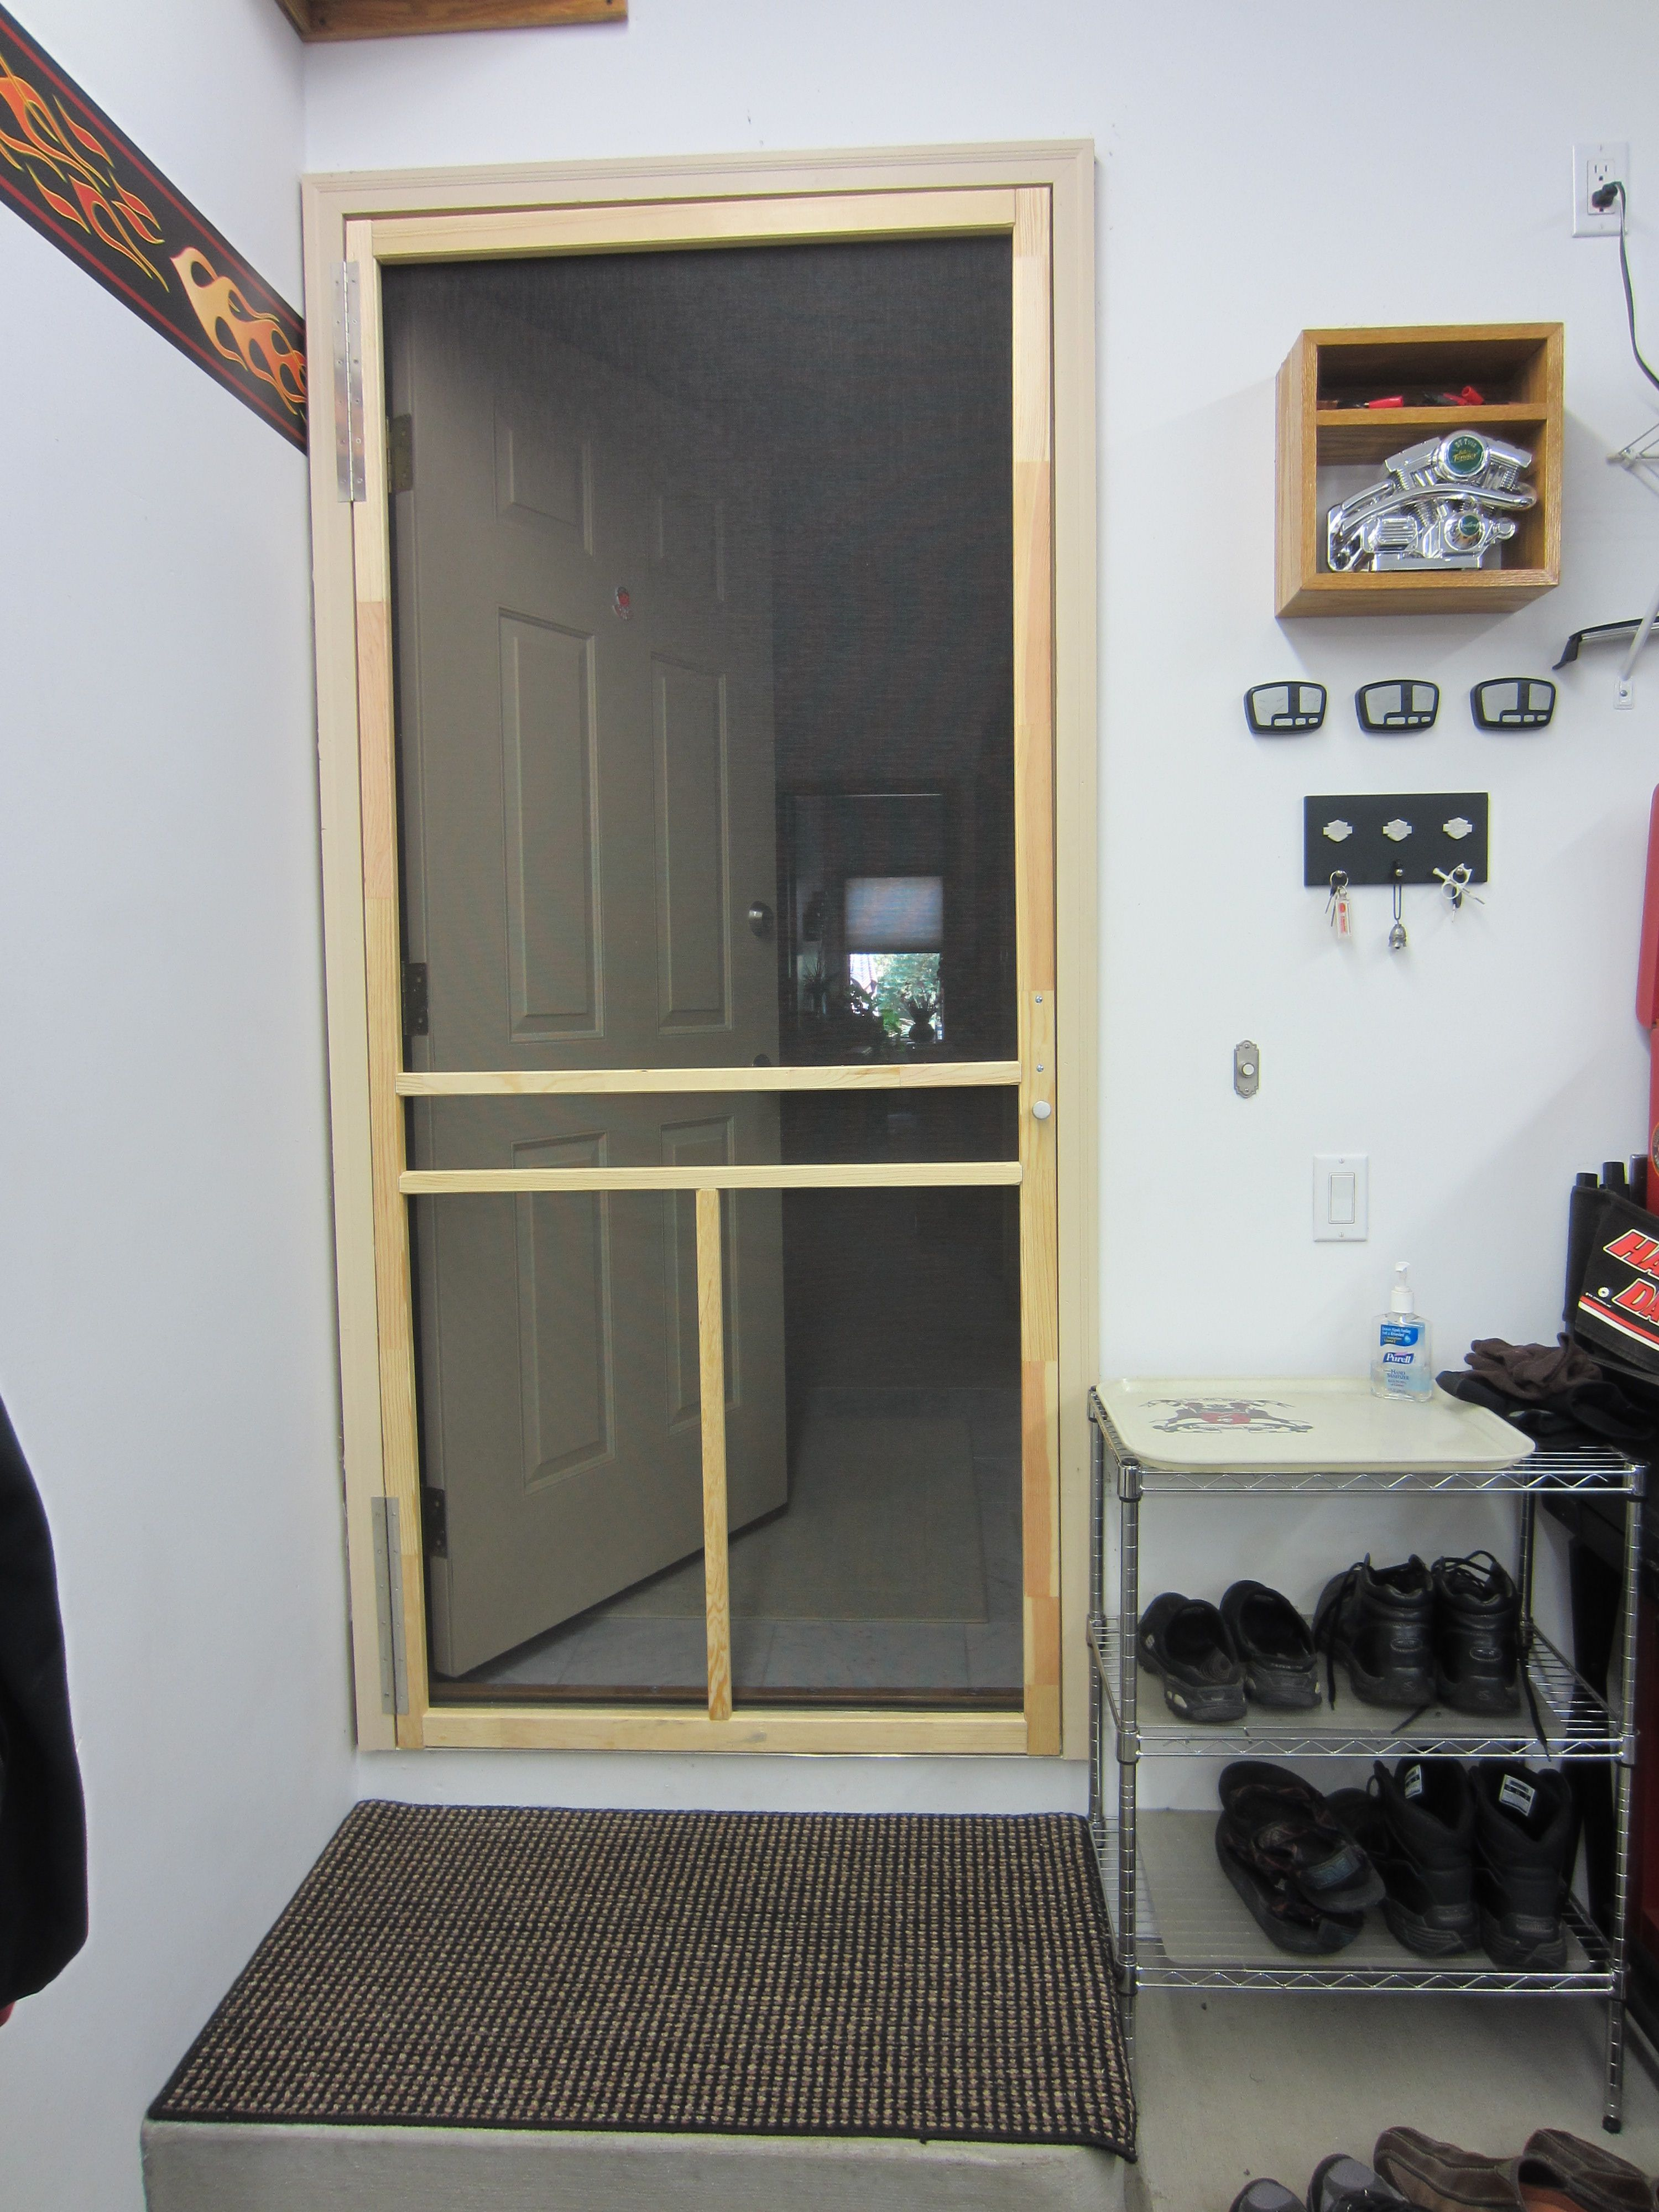 Screen Door Between House And Garage Provides Energy Savings By Not Having To Run The Air Conditioning When It S Cooling Off Outside Sim House Diy Garage Home